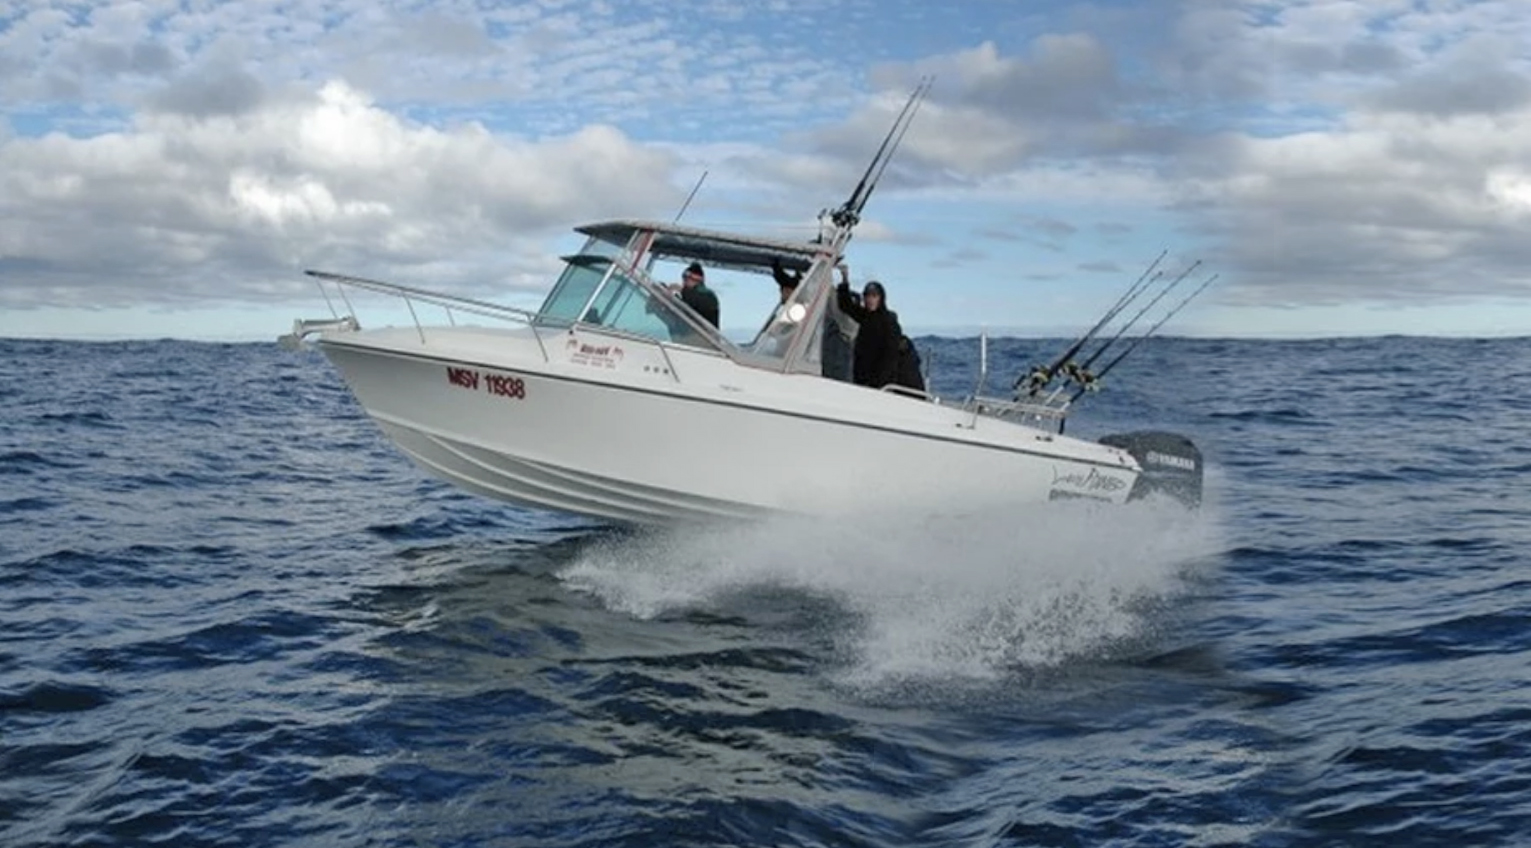 About Our Boat - About Dan   Charters   ContactOur boat is a near new 5 year old, 7.5mtr custom built White Pointer built by well known boat builder Eric Hyland. This vessel is powered by twin Yamaha 150 four strokes and has a top speed of 85kph.It is built to TSV survey standards and is licensed to travel 30nm off the mainland of Australia and is in current 2C and 2D survey. 2C being ocean going, we are licensed to carry 6 passengers and 2 crew.It has been fitted out with the very best of everything from the Furuno 585 to the Lowrance HDS 10, right through to the very best led lighting from hella marine, all safety gear is to marine board survey standards so you can be assured, that when you are aboard